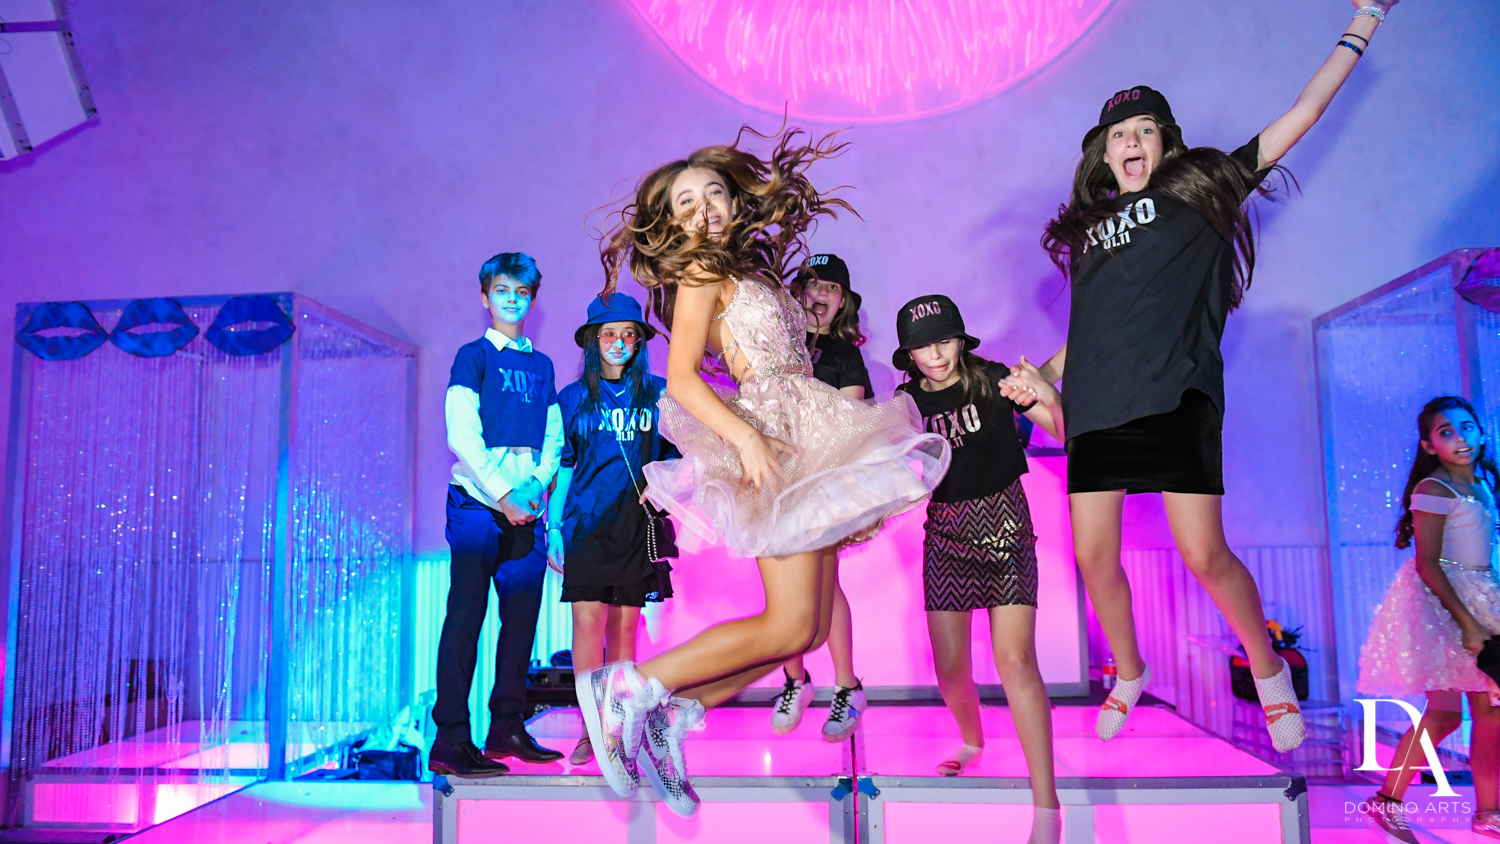 fun at Pink XO Bat Mitzvah at The Venue Crystal Ballroom by Domino Arts Photography